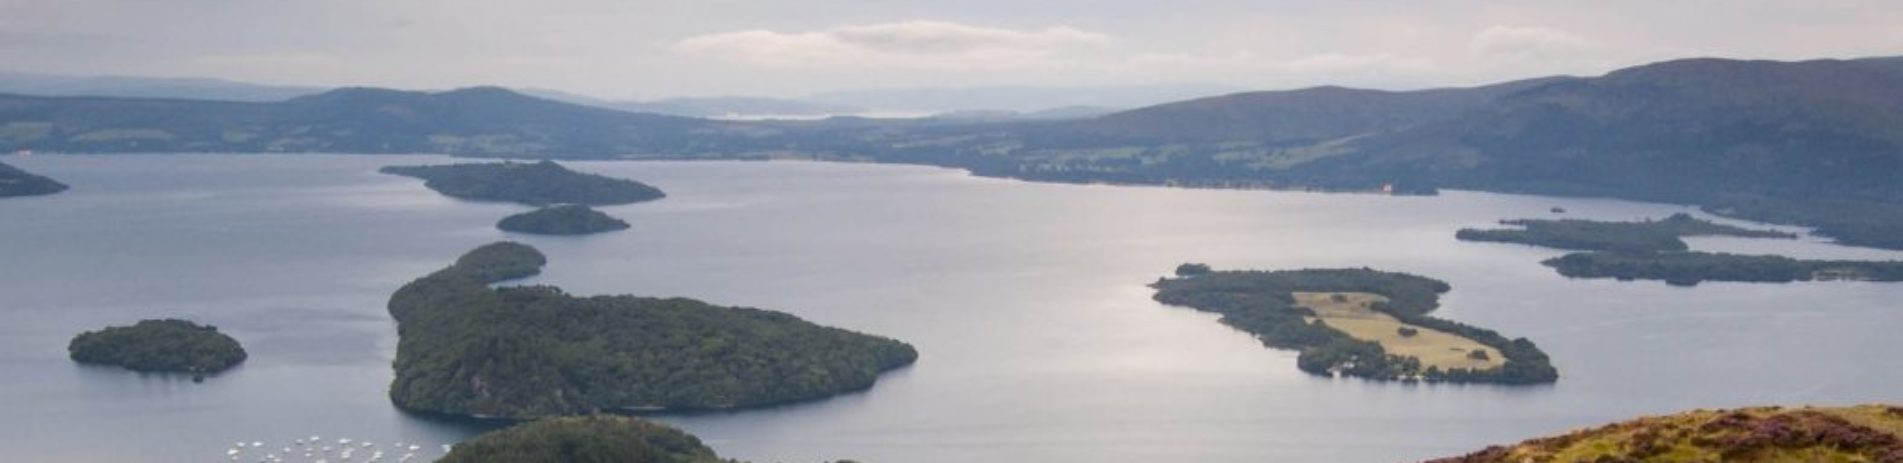 loch-lomond-islands-seen-from-slopes-of-conic-hill